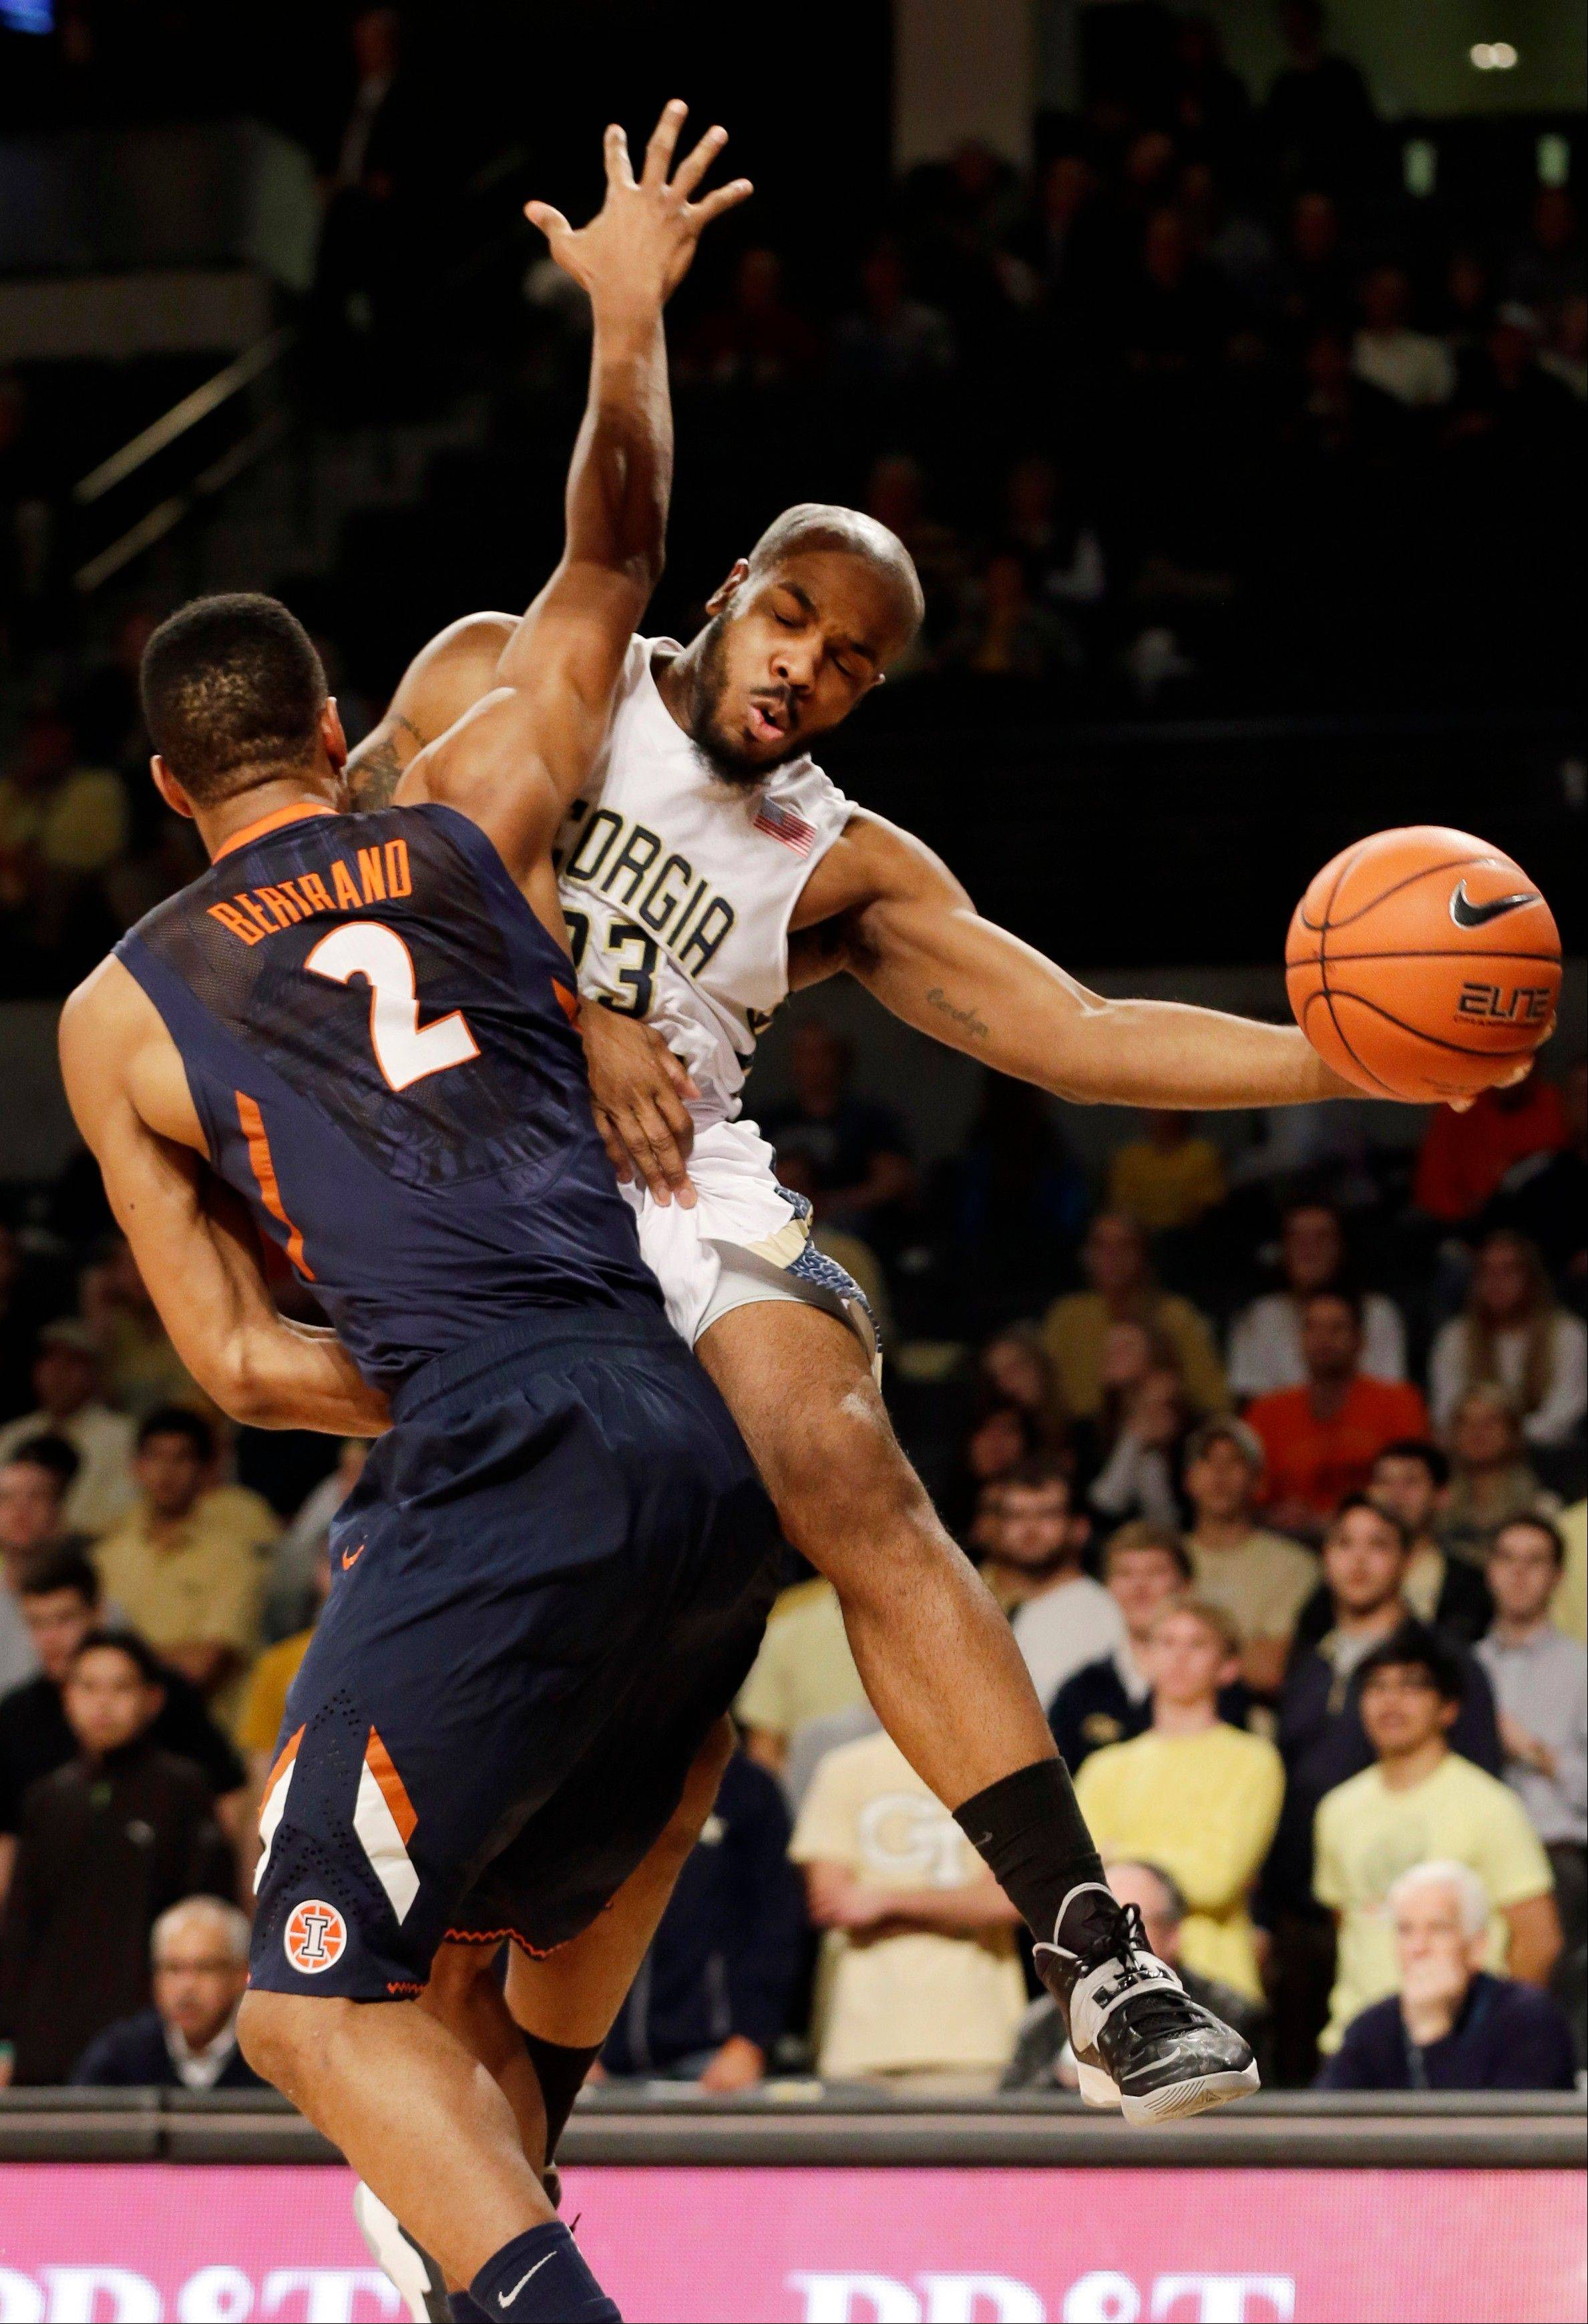 Georgia Tech guard Trae Golden, right, passes the ball as Illinois guard Joseph Bertrand (2) defends during Tuesday�s game in Atlanta. The Illini suffered their first loss of the season, 67-64.